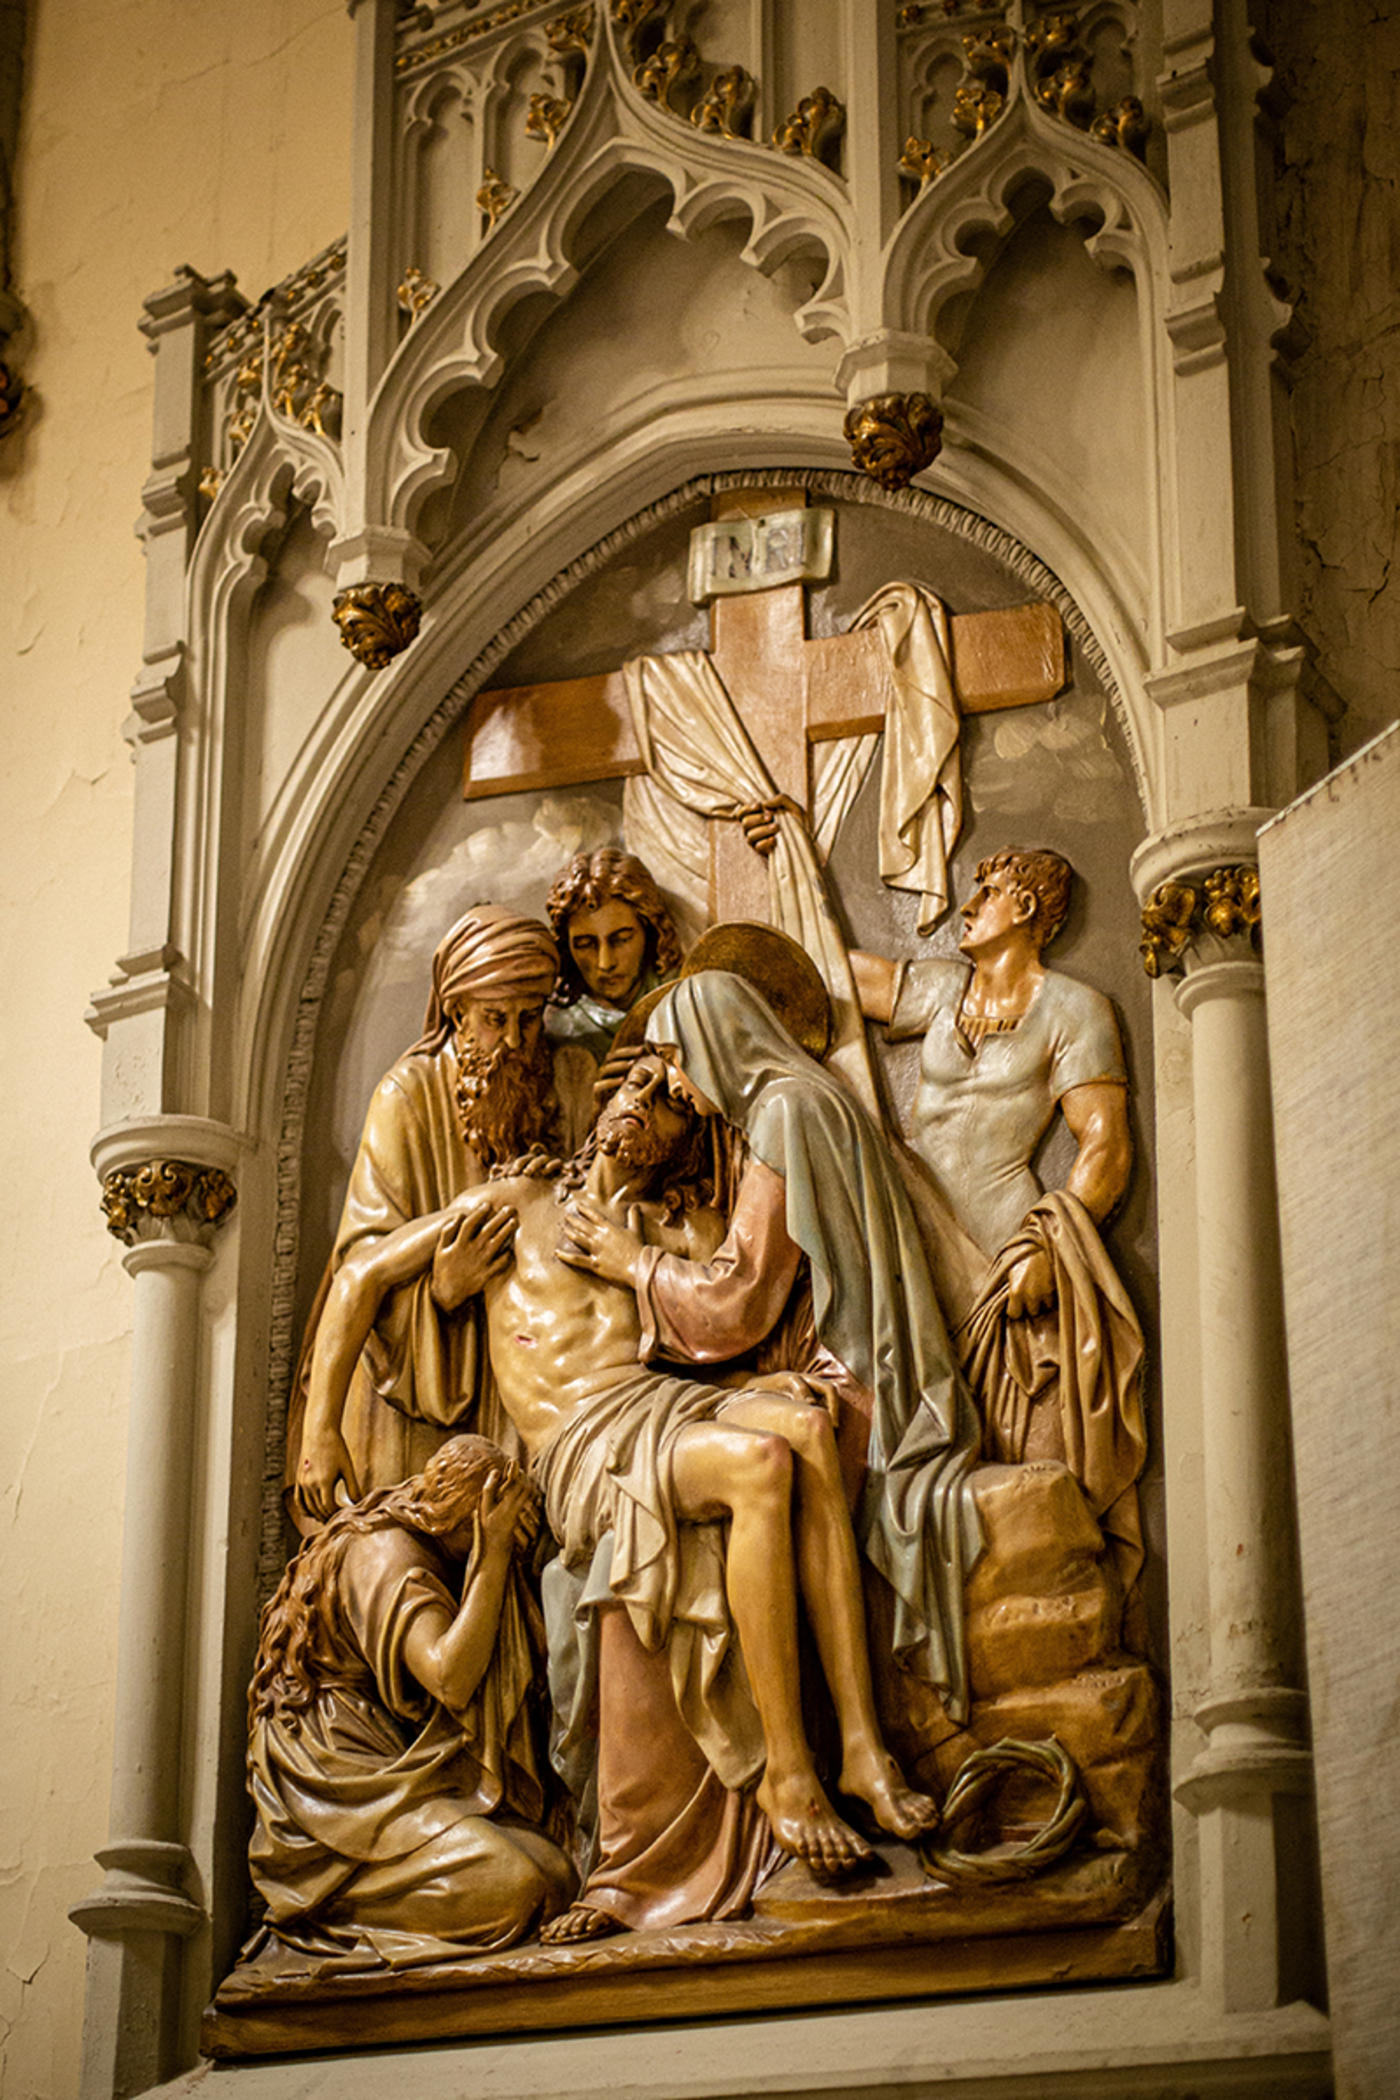 one of the stations of the cross at St. Augustine church in Brooklyn, NY